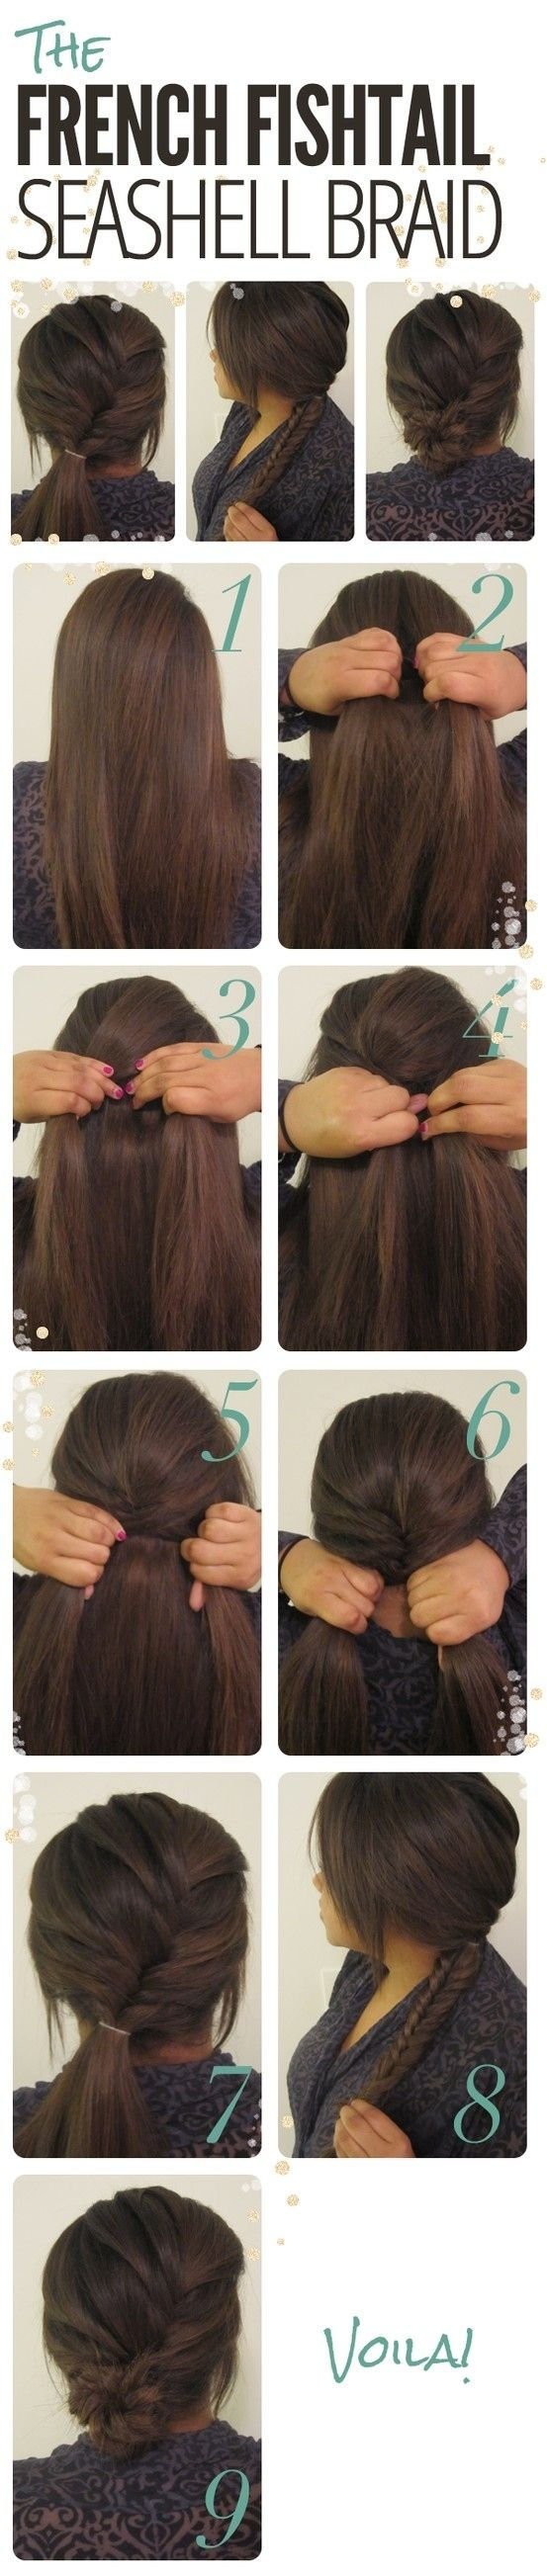 Hairstyles for Long Hair Step by Step-1